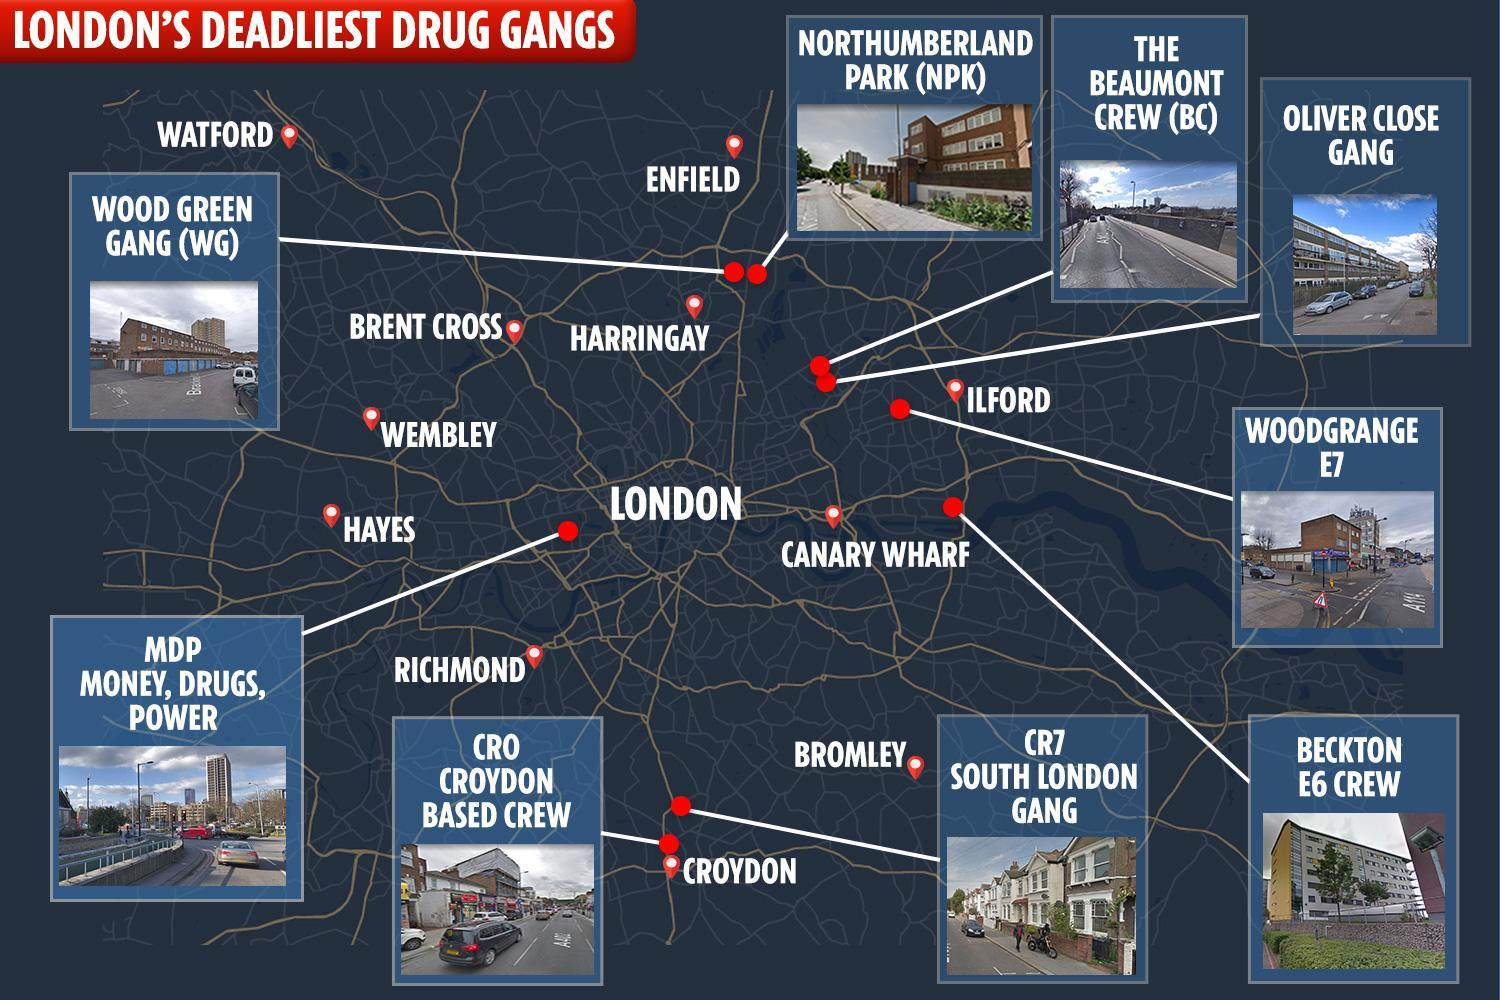 There are at least four gangs operating in the Stoke Newington area